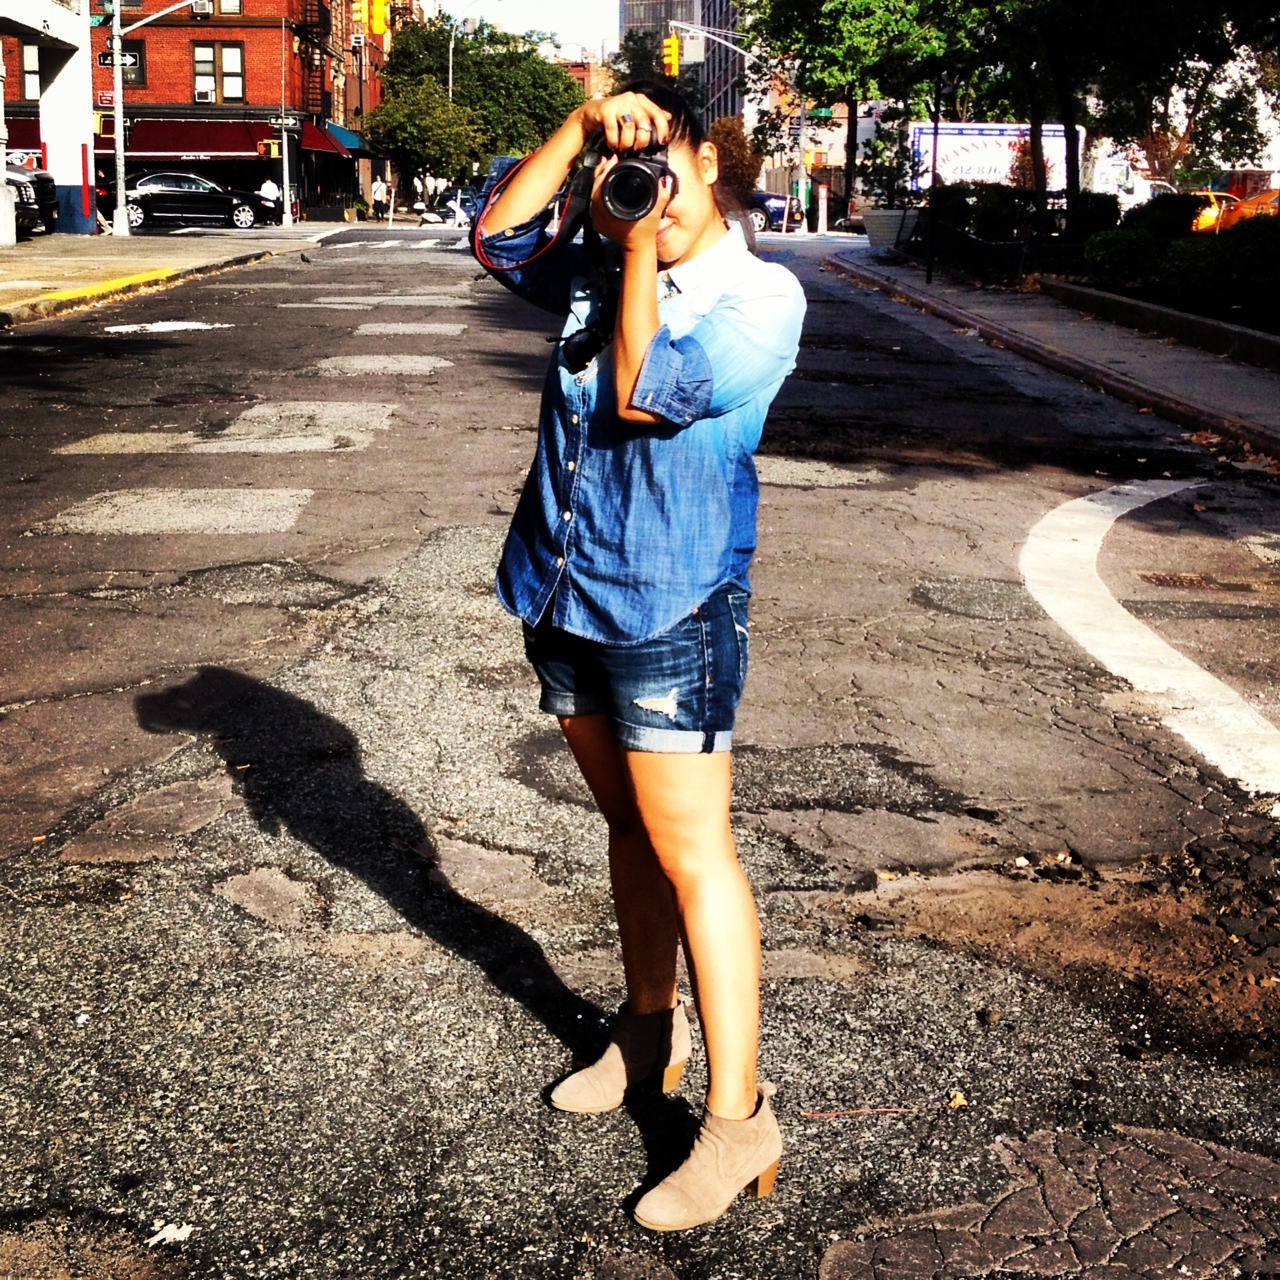 Do The Hotpants Gemma Lopez Streetstyle Photographer